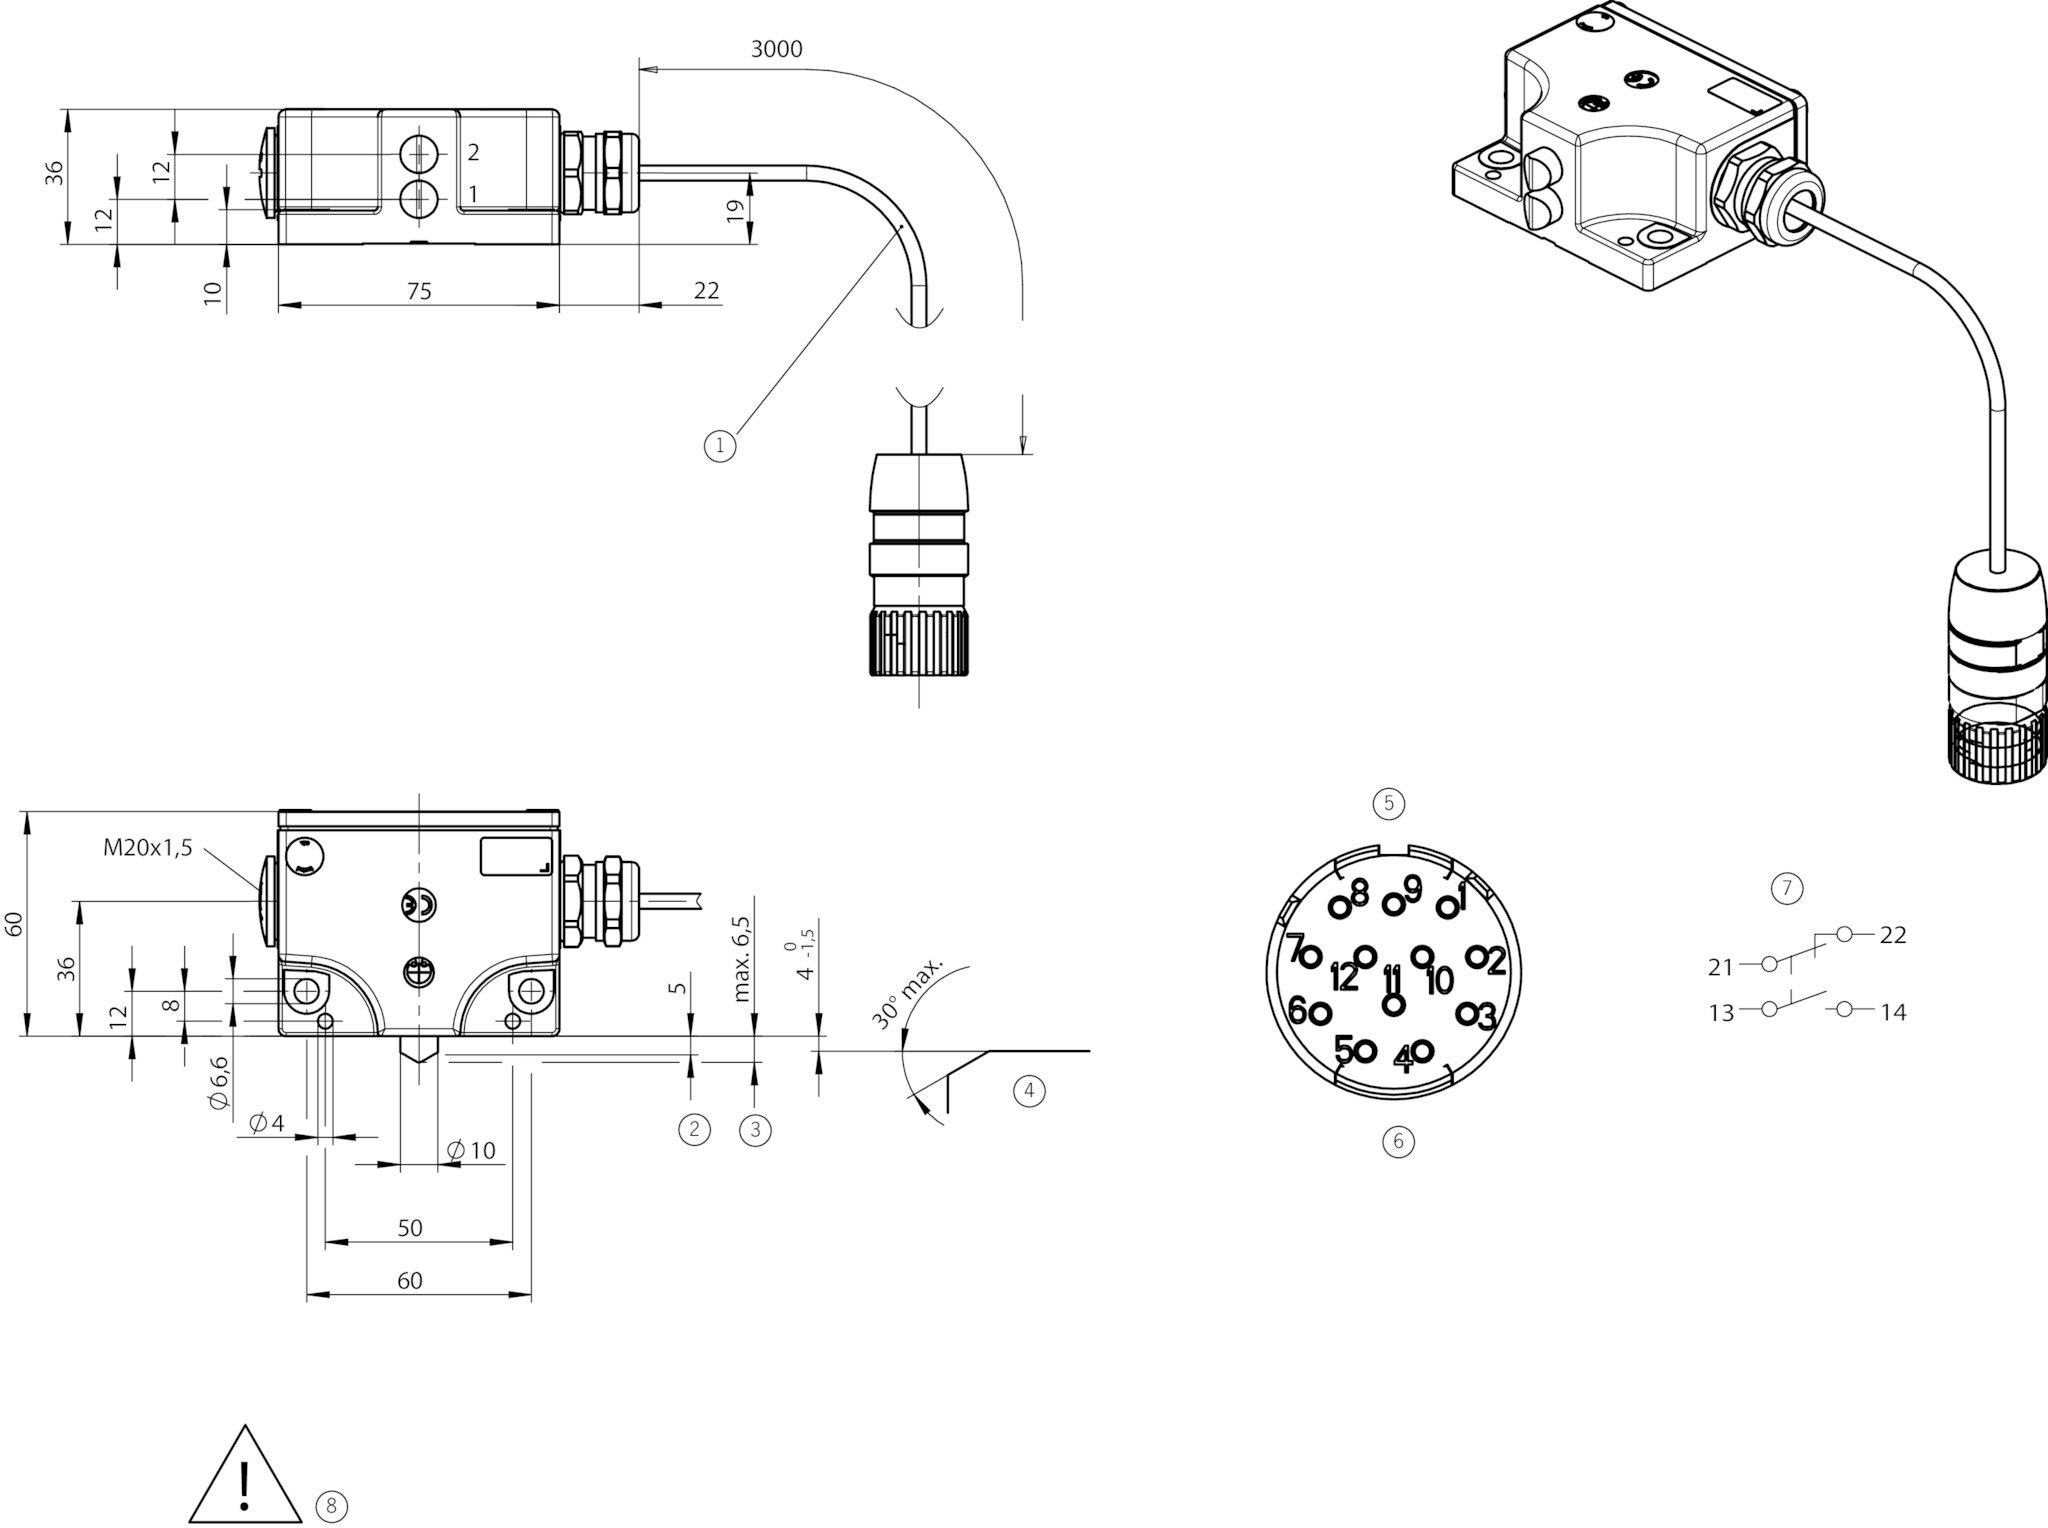 315824  Pin Din Cable Wiring Diagram on 8 pin ribbon cable connector, 8 pin din male connector to ethernet cable, 8 pin din connector pin numbers, 8 pin din to 3 5mm plug wiring, 8 pin trailer wiring diagram,